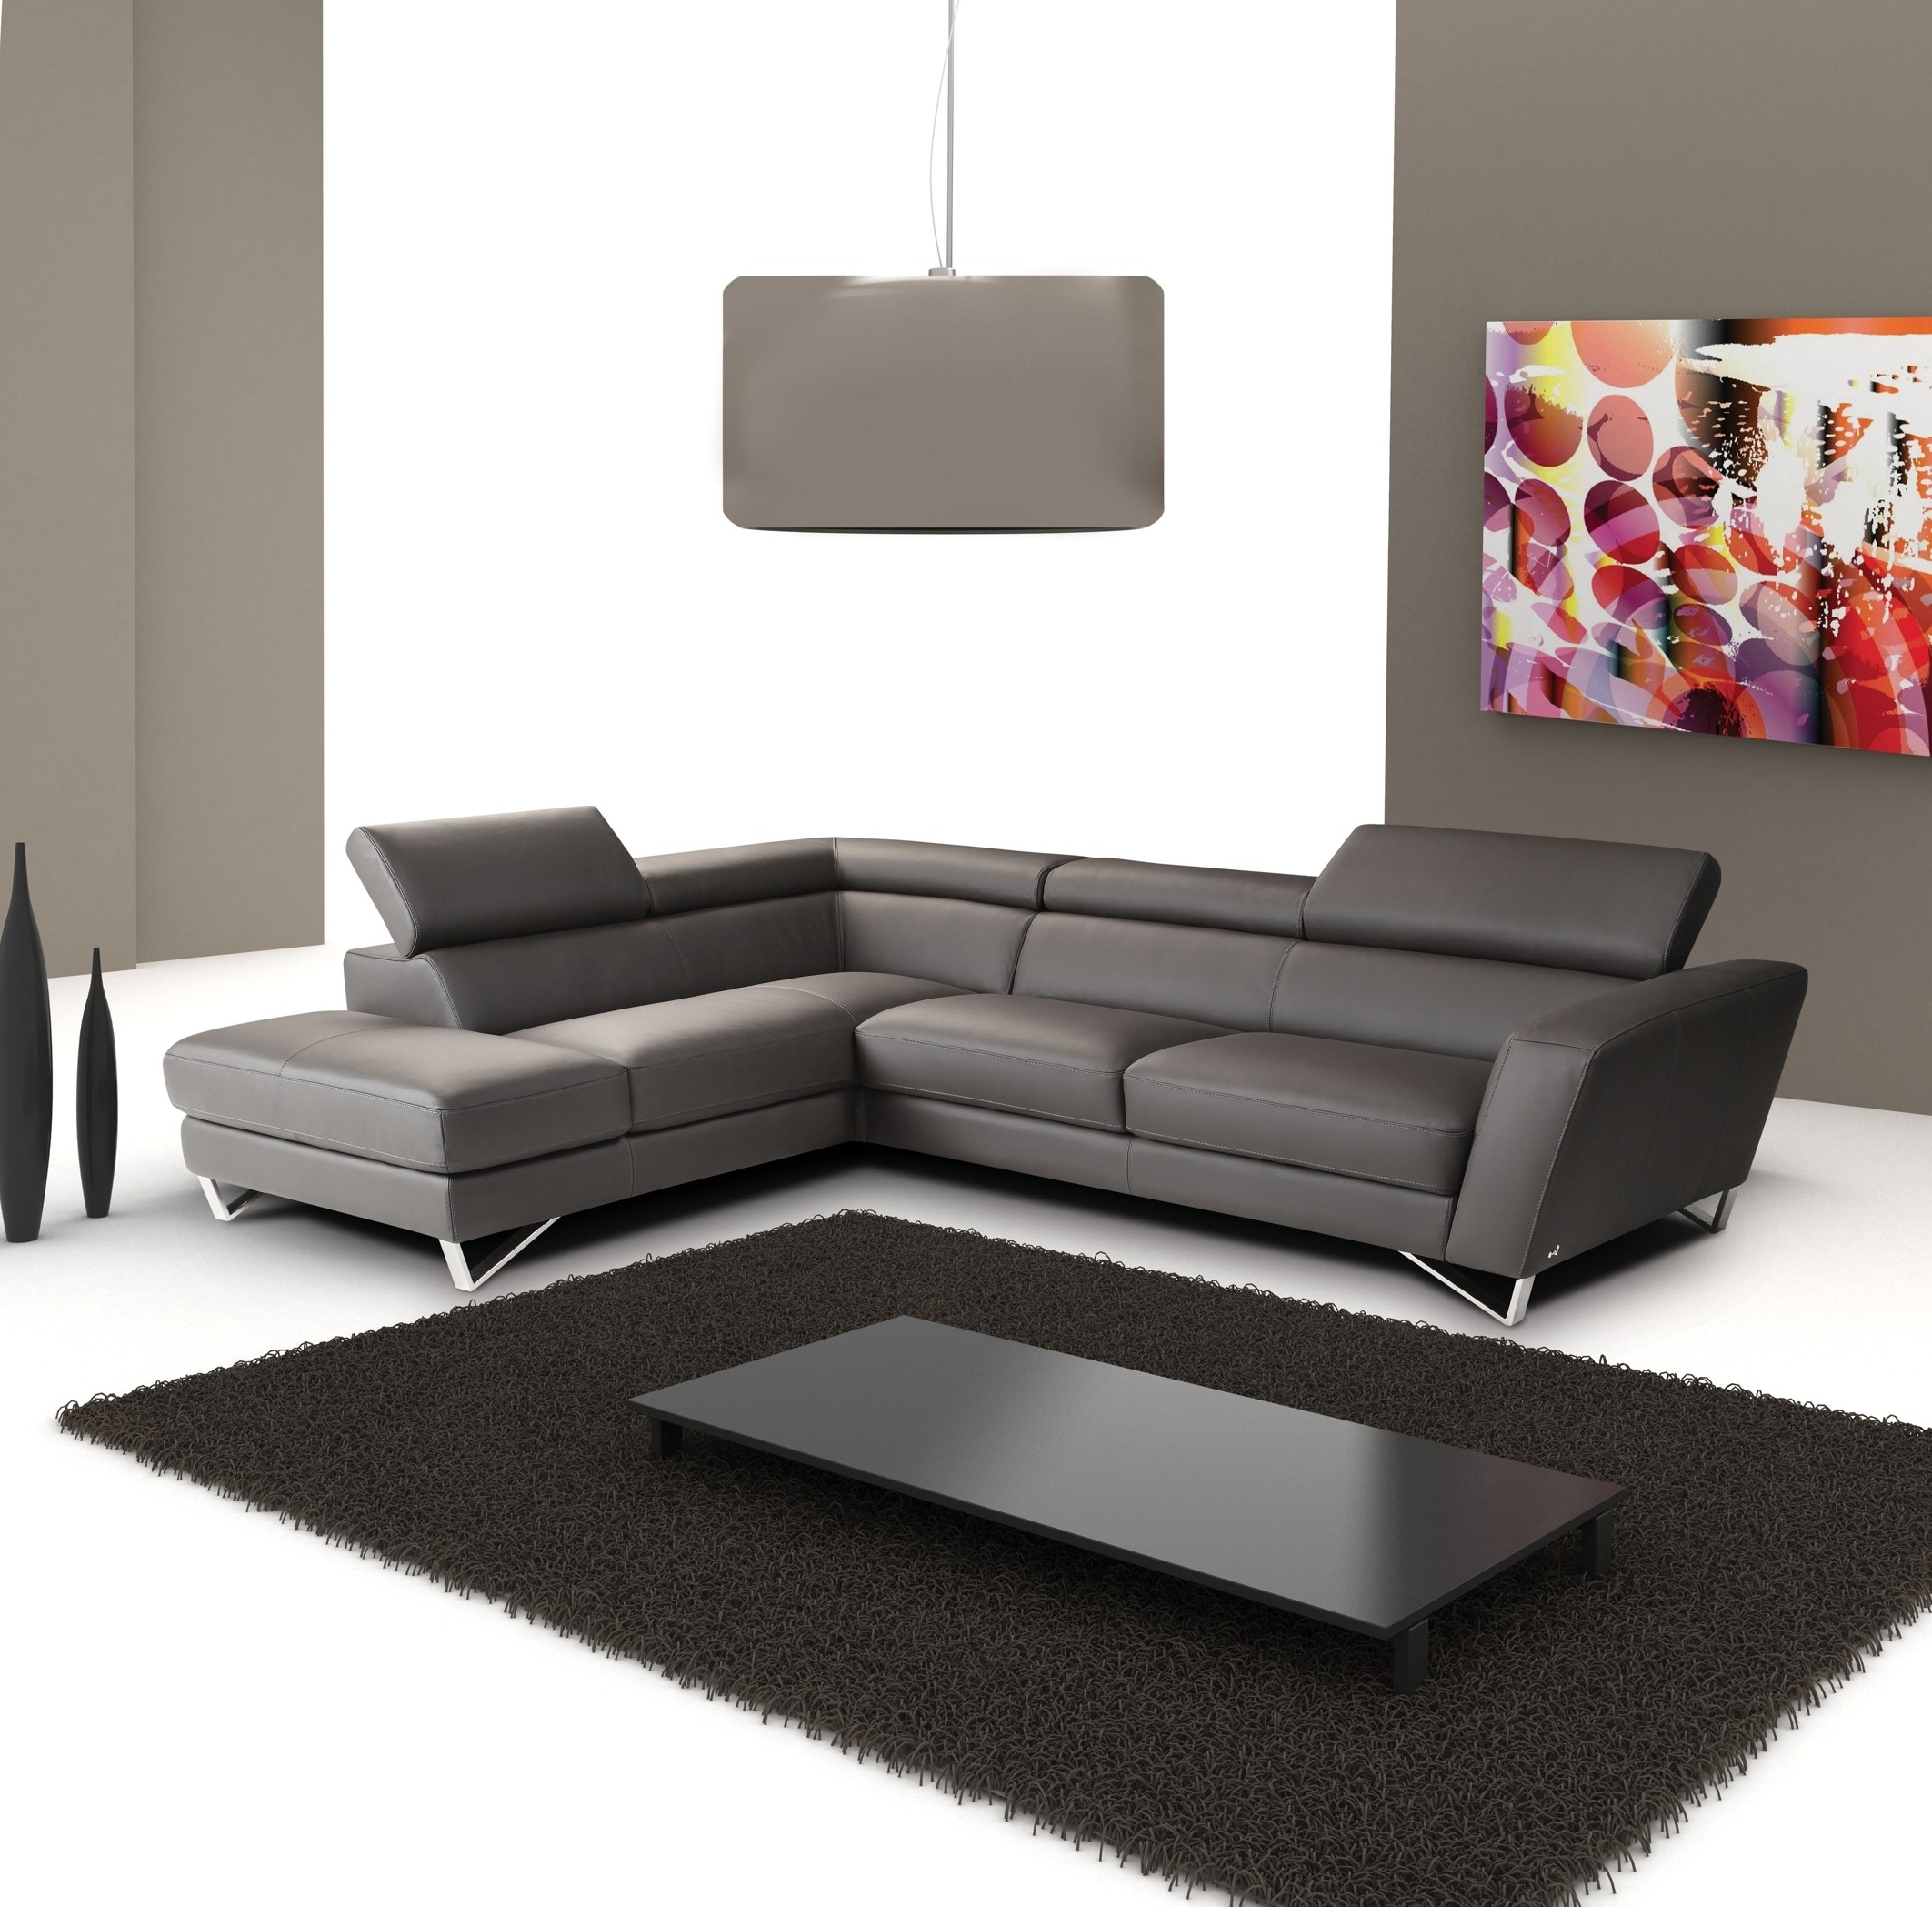 Sectional Modern Sofa Interior White Button Leather Furniture Intended For 2018 Vancouver Bc Canada Sectional Sofas (View 4 of 15)